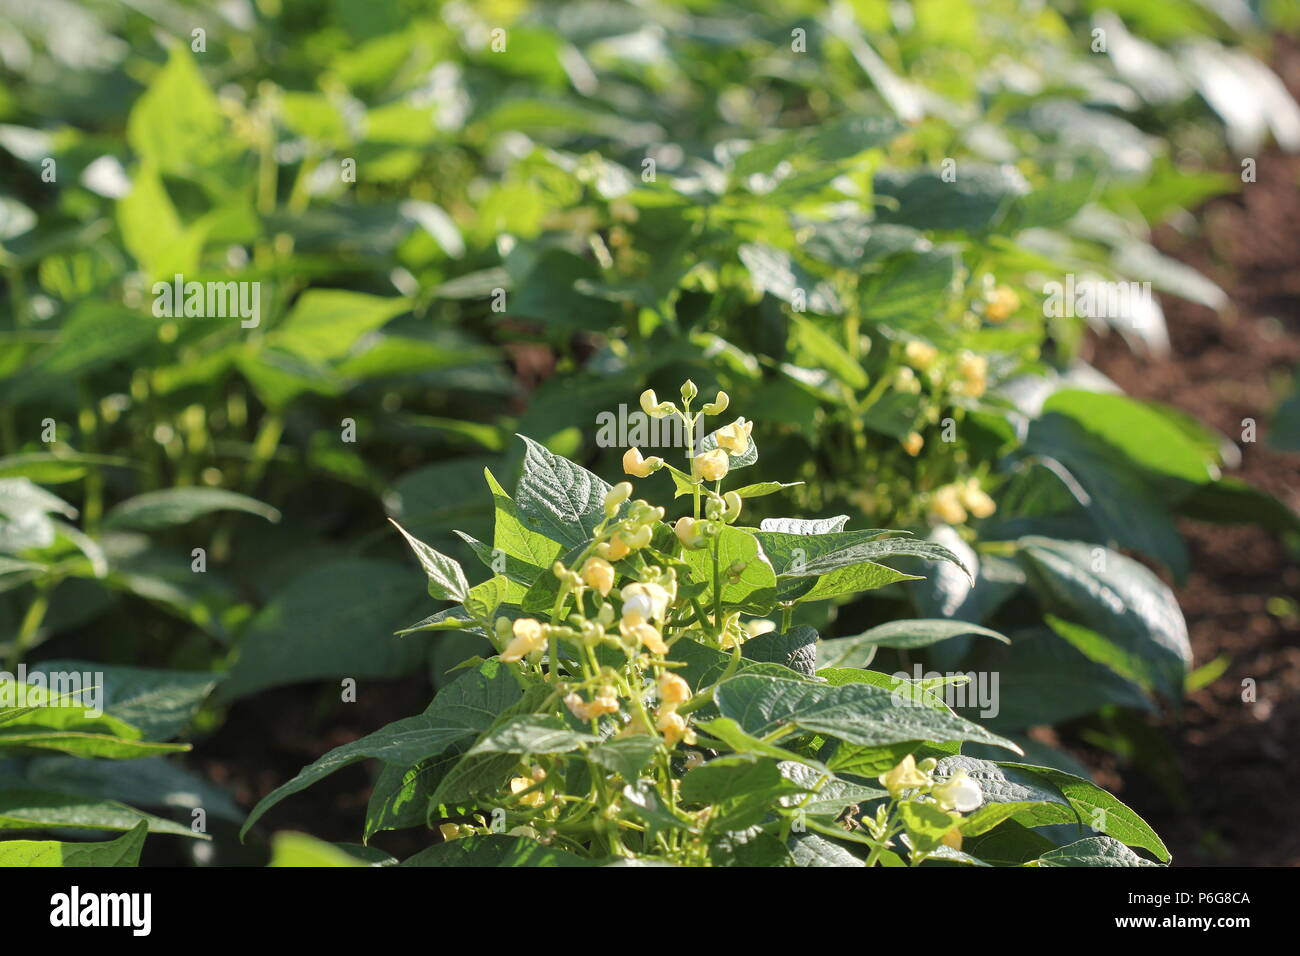 Kidney Bean Plant Garden High Resolution Stock Photography And Images Alamy